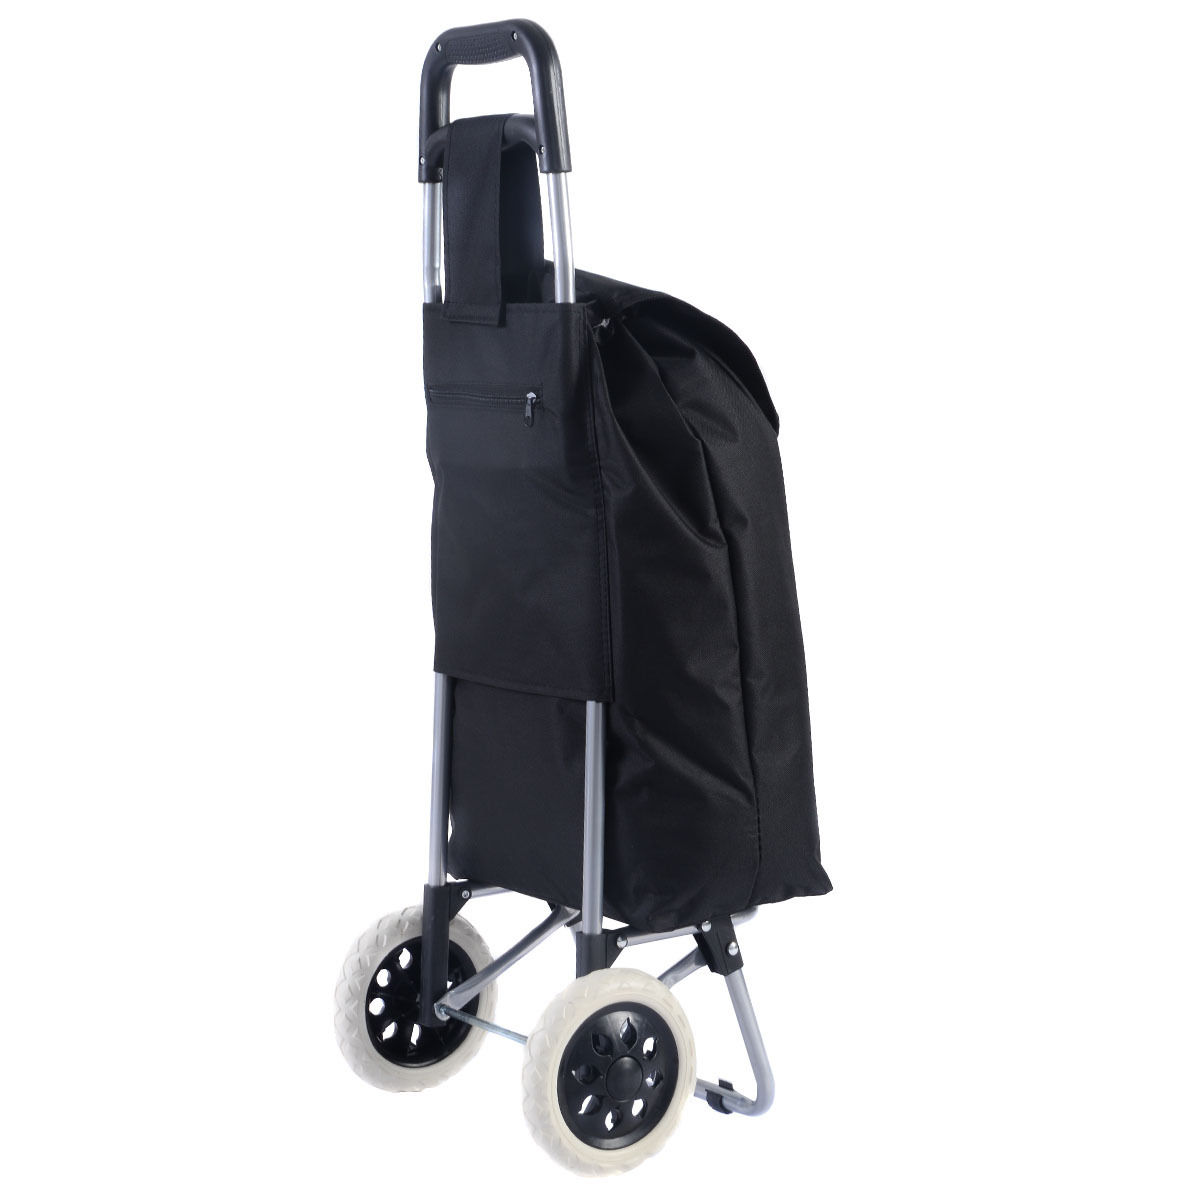 folding chair cart unfinished oak chairs black trolley travel shopping bag grocery rolling wheel